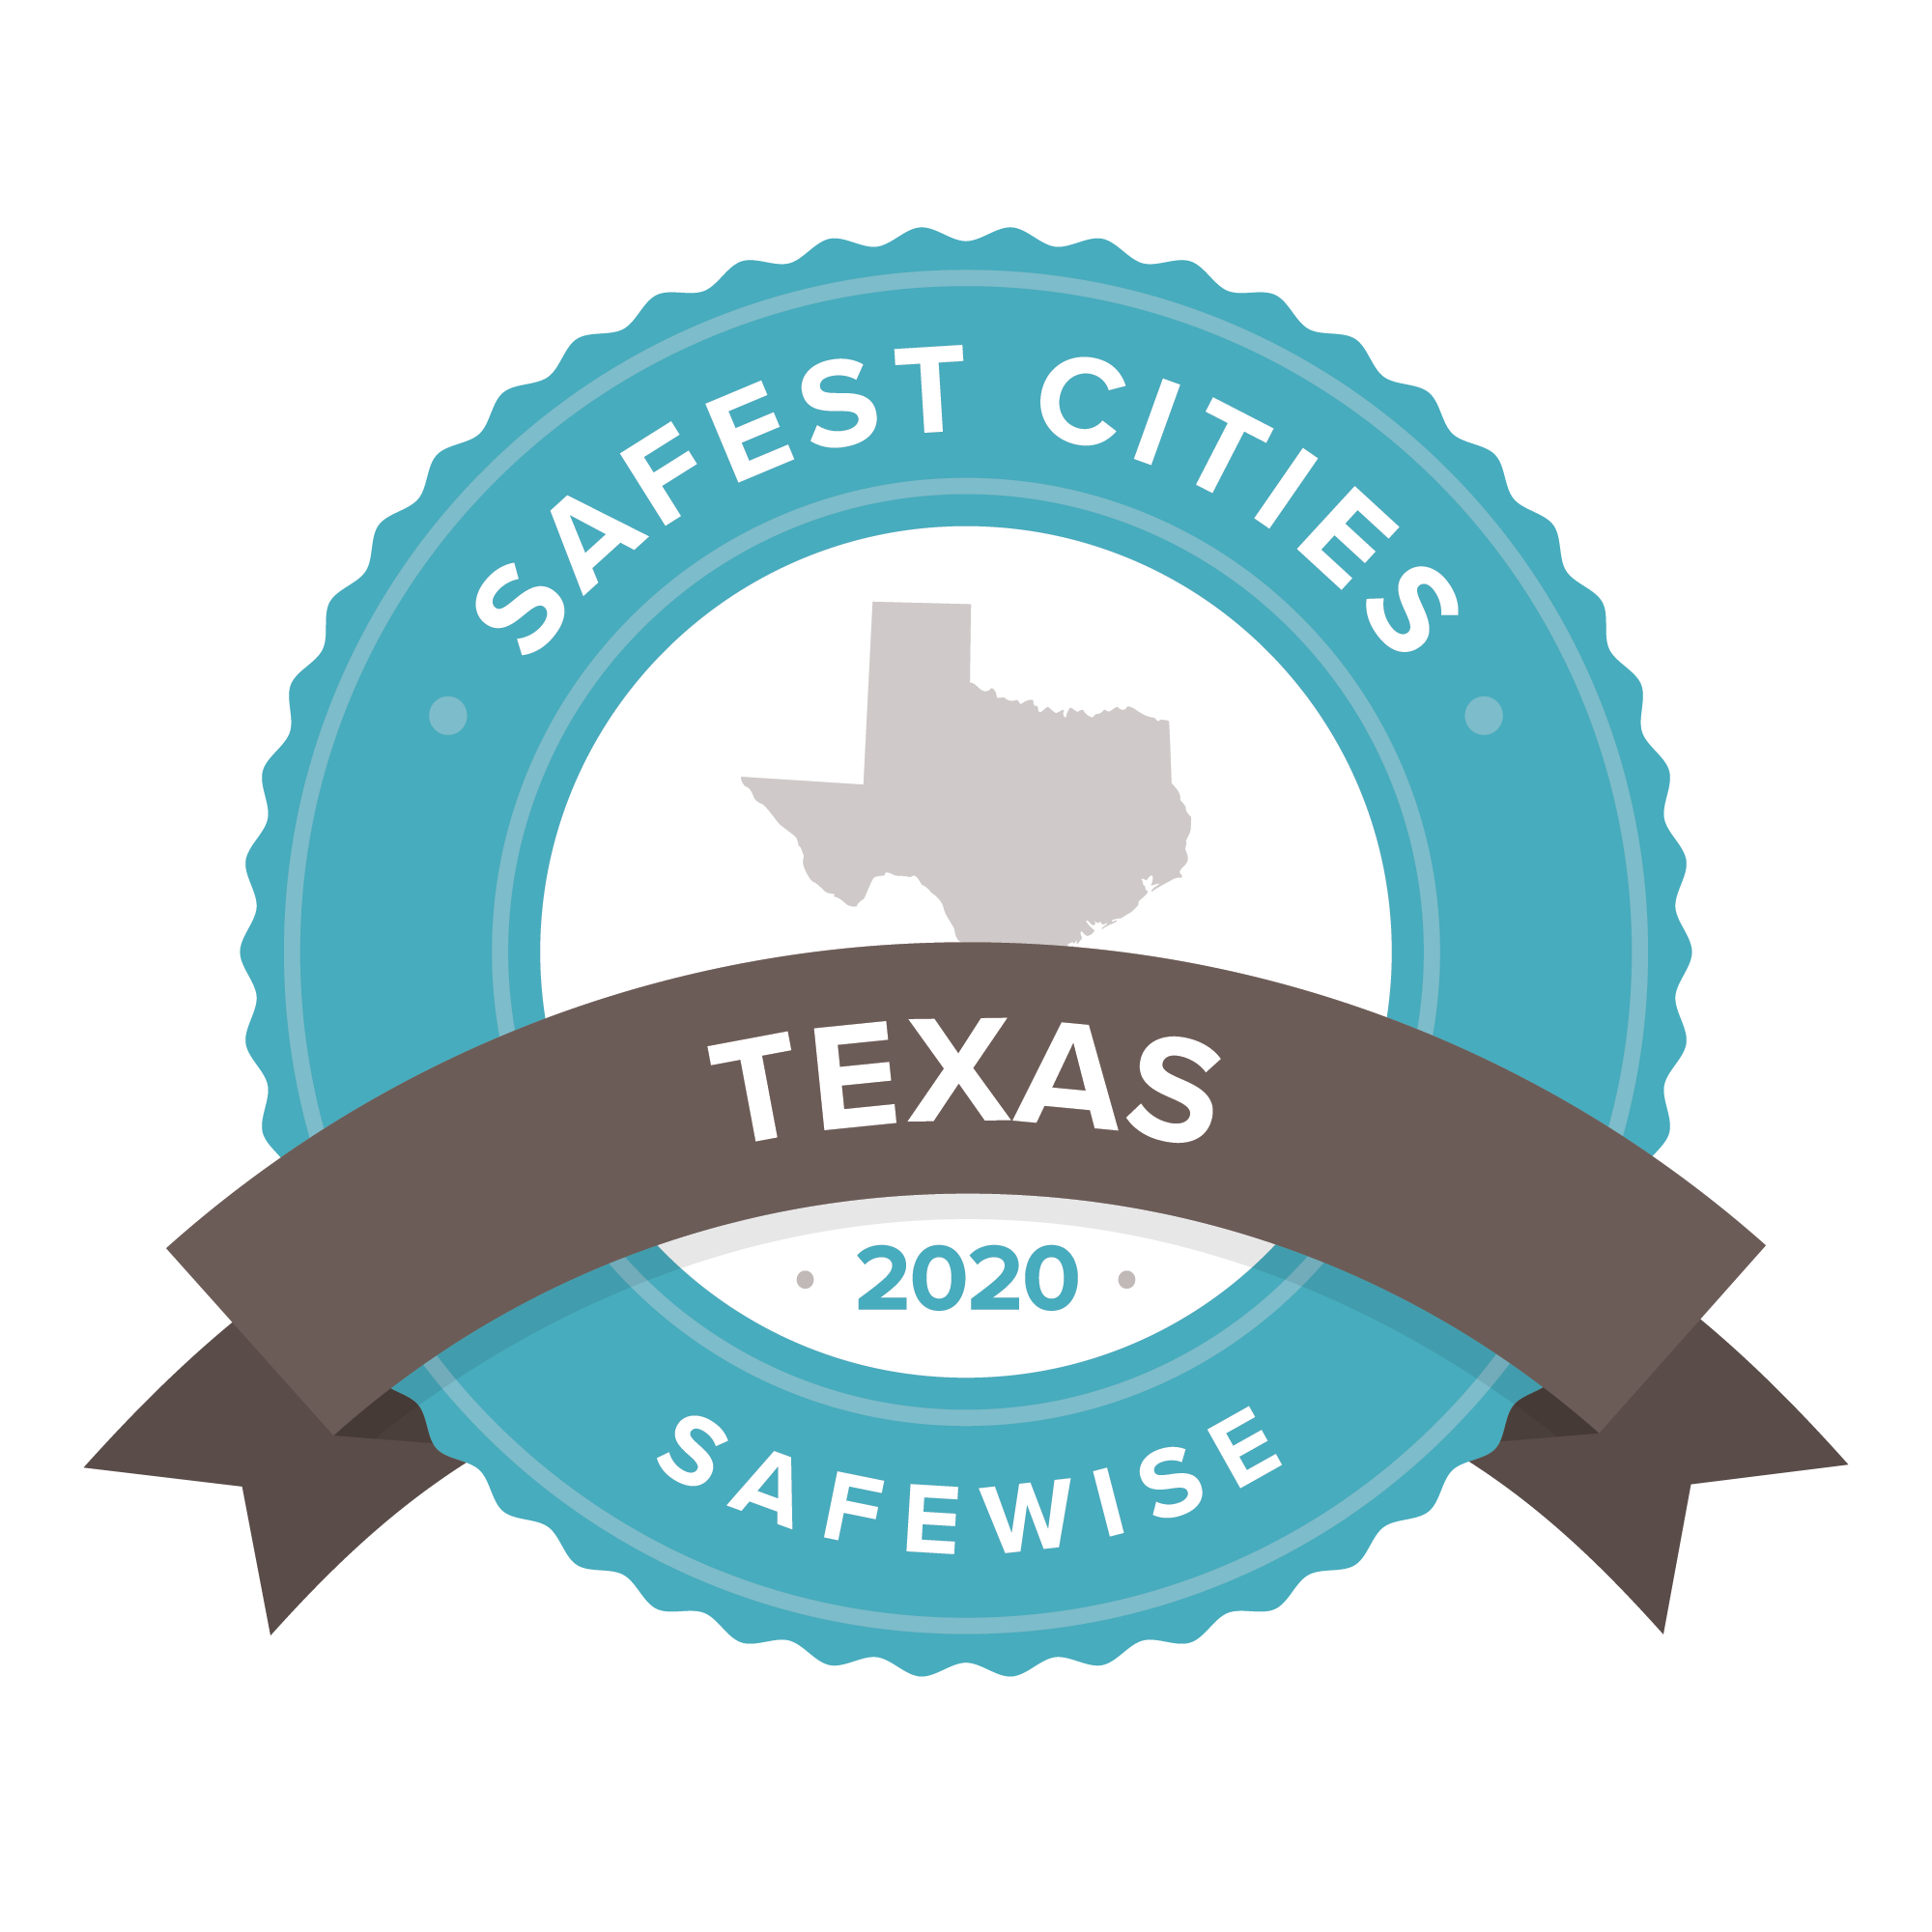 Texas safest cities badge